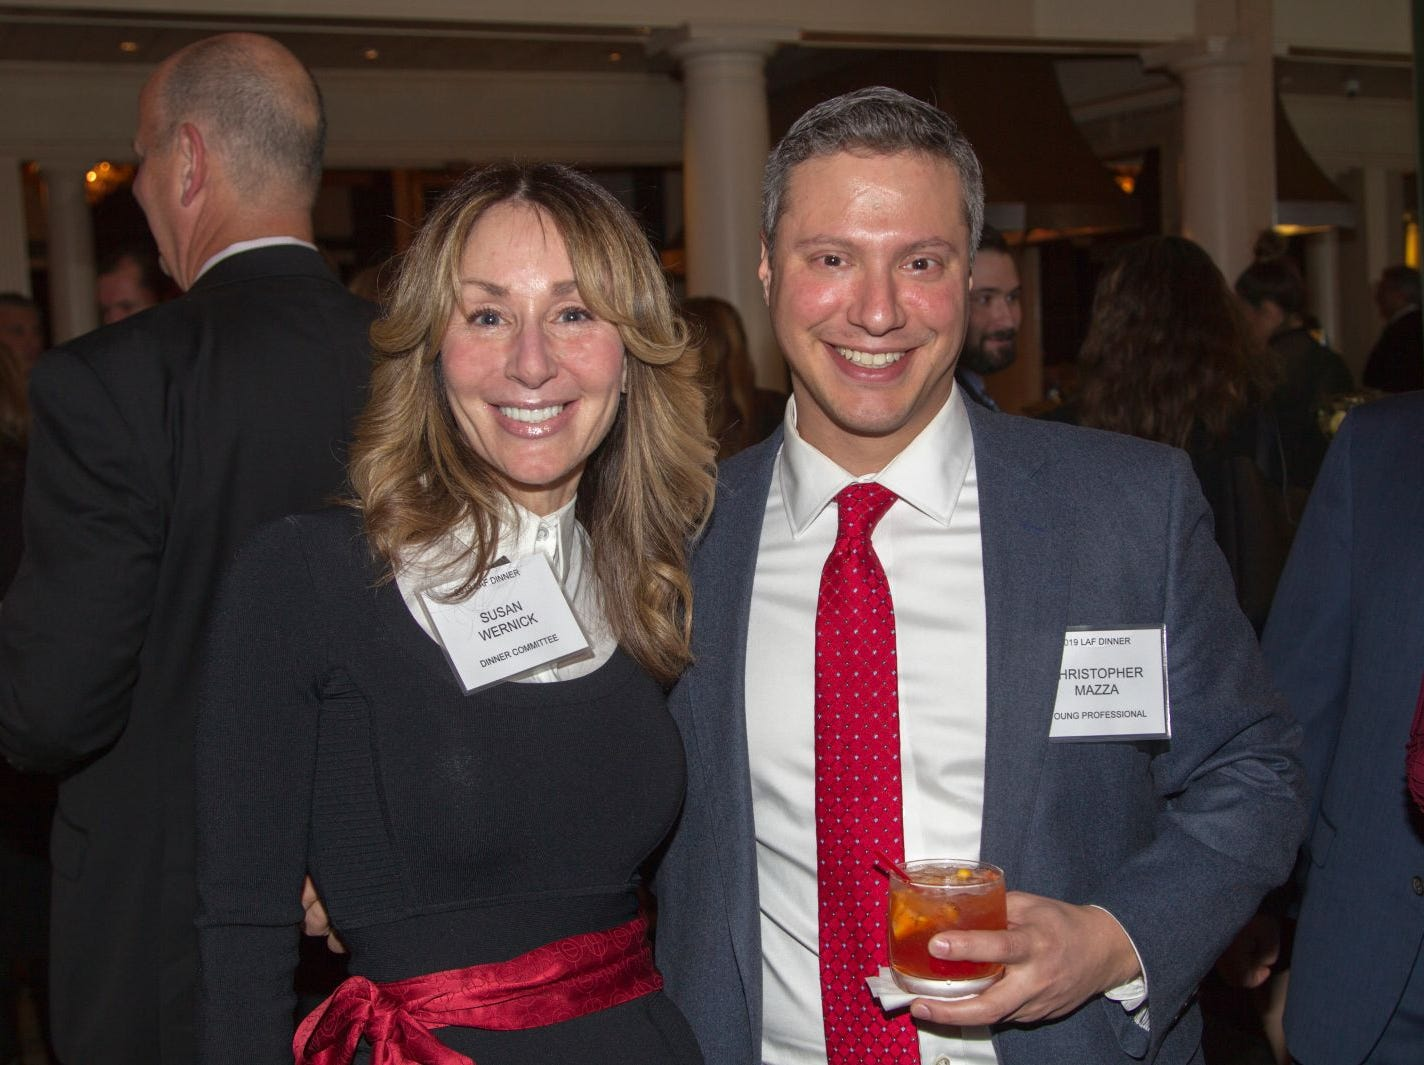 Chris Mazza, Susan Wernick. Eva's Village hosted its second annual Lawyers, Accountants and Financial Professionals Benefit Dinner at Westmount Country Club in Woodland Park. 02/21/2019